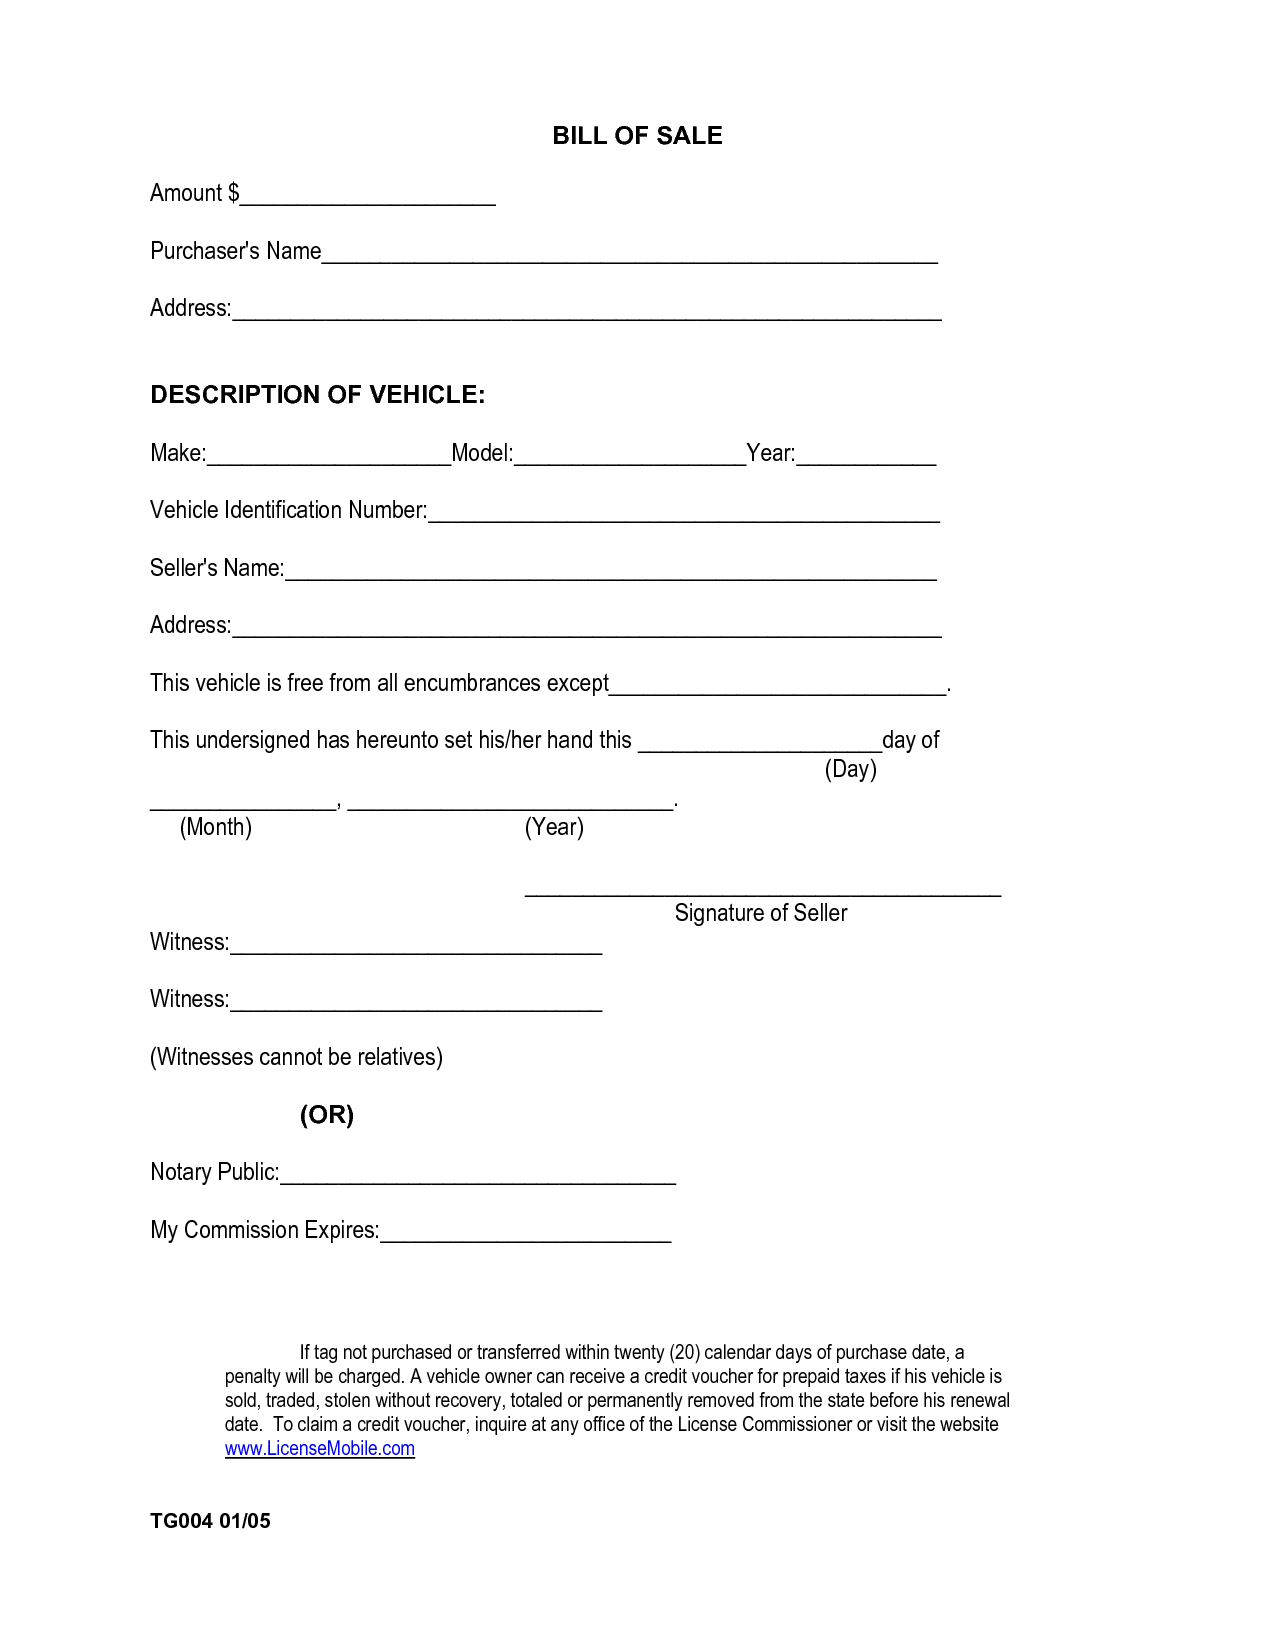 Bill Of Sale for A Car Template and Printable Sample Car Bill Of Sale form Laywers Template forms